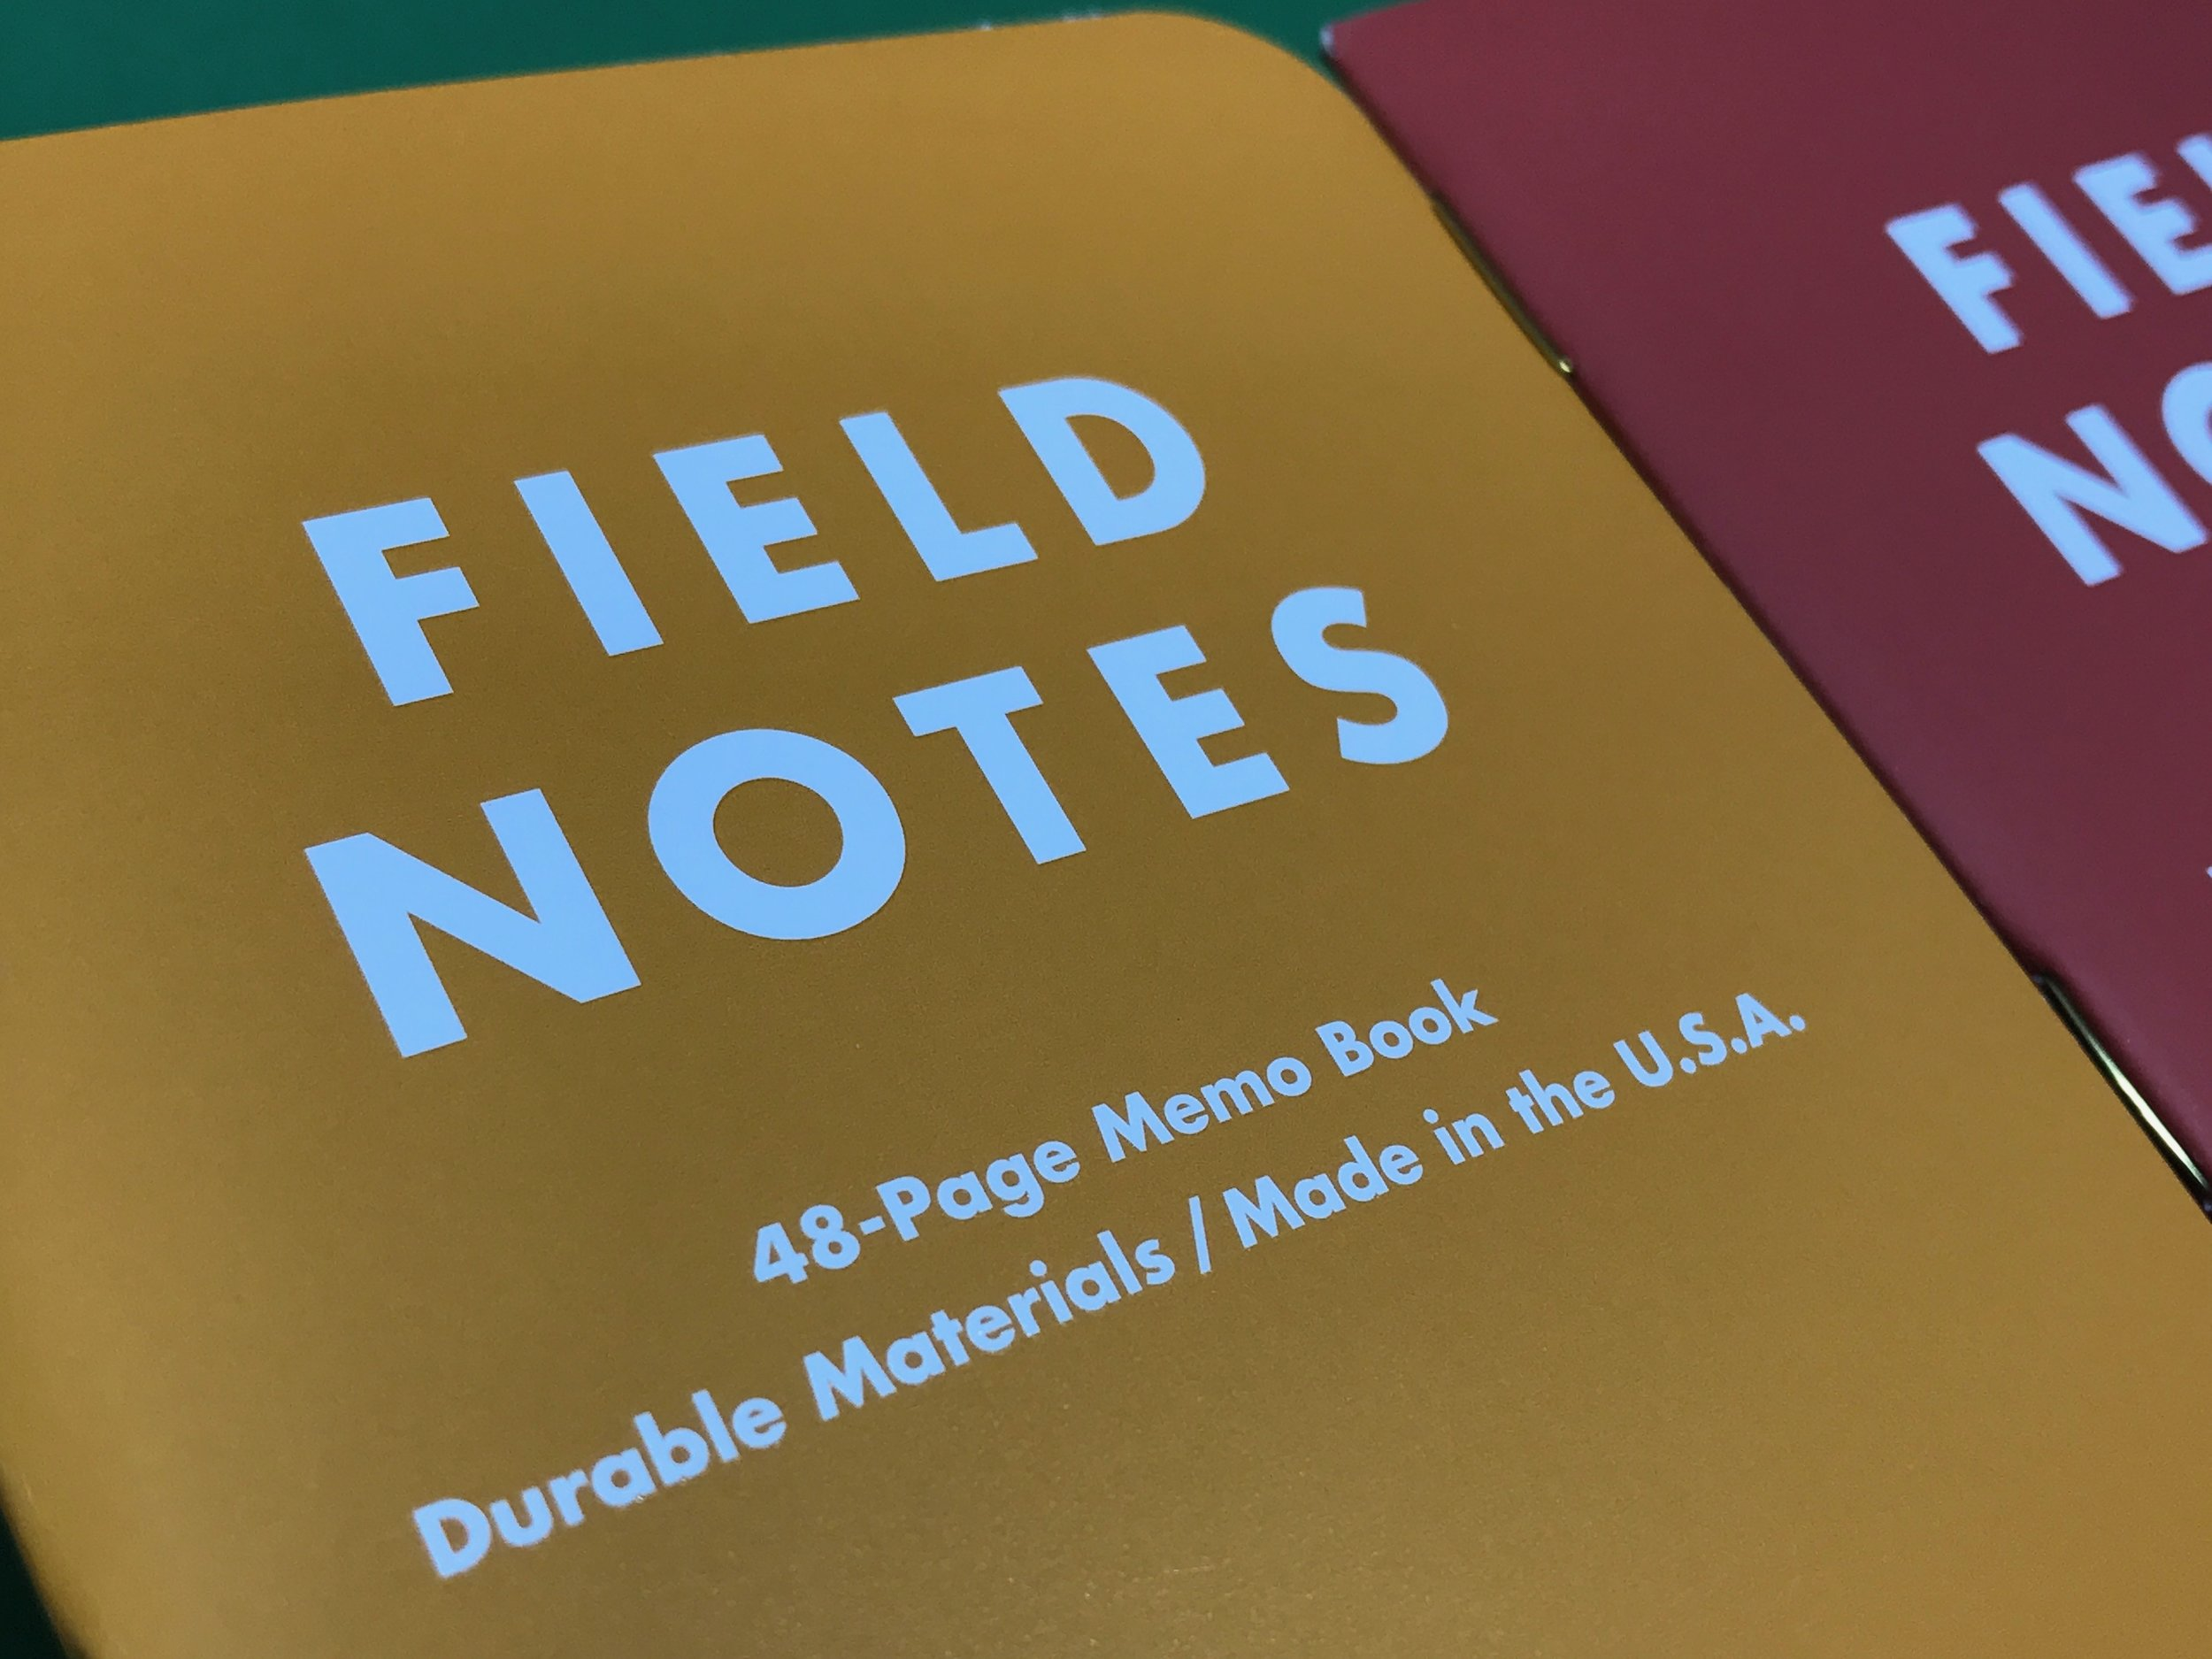 field-notes-drink-local-8.jpg